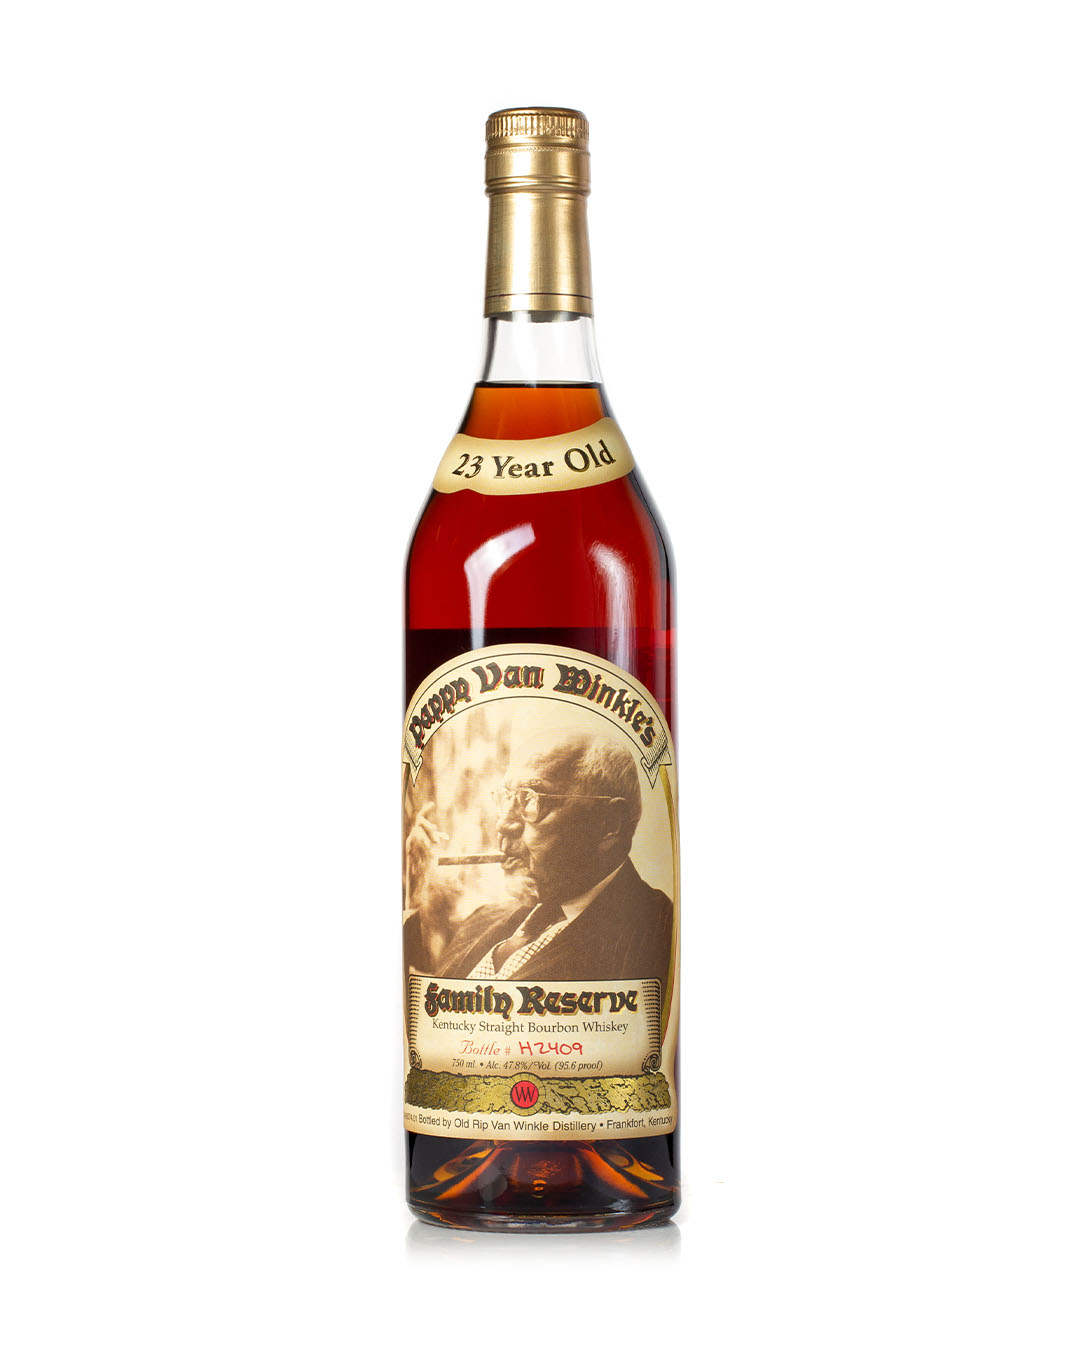 Pappy Van Winkle, 23 Year Old Family Reserve